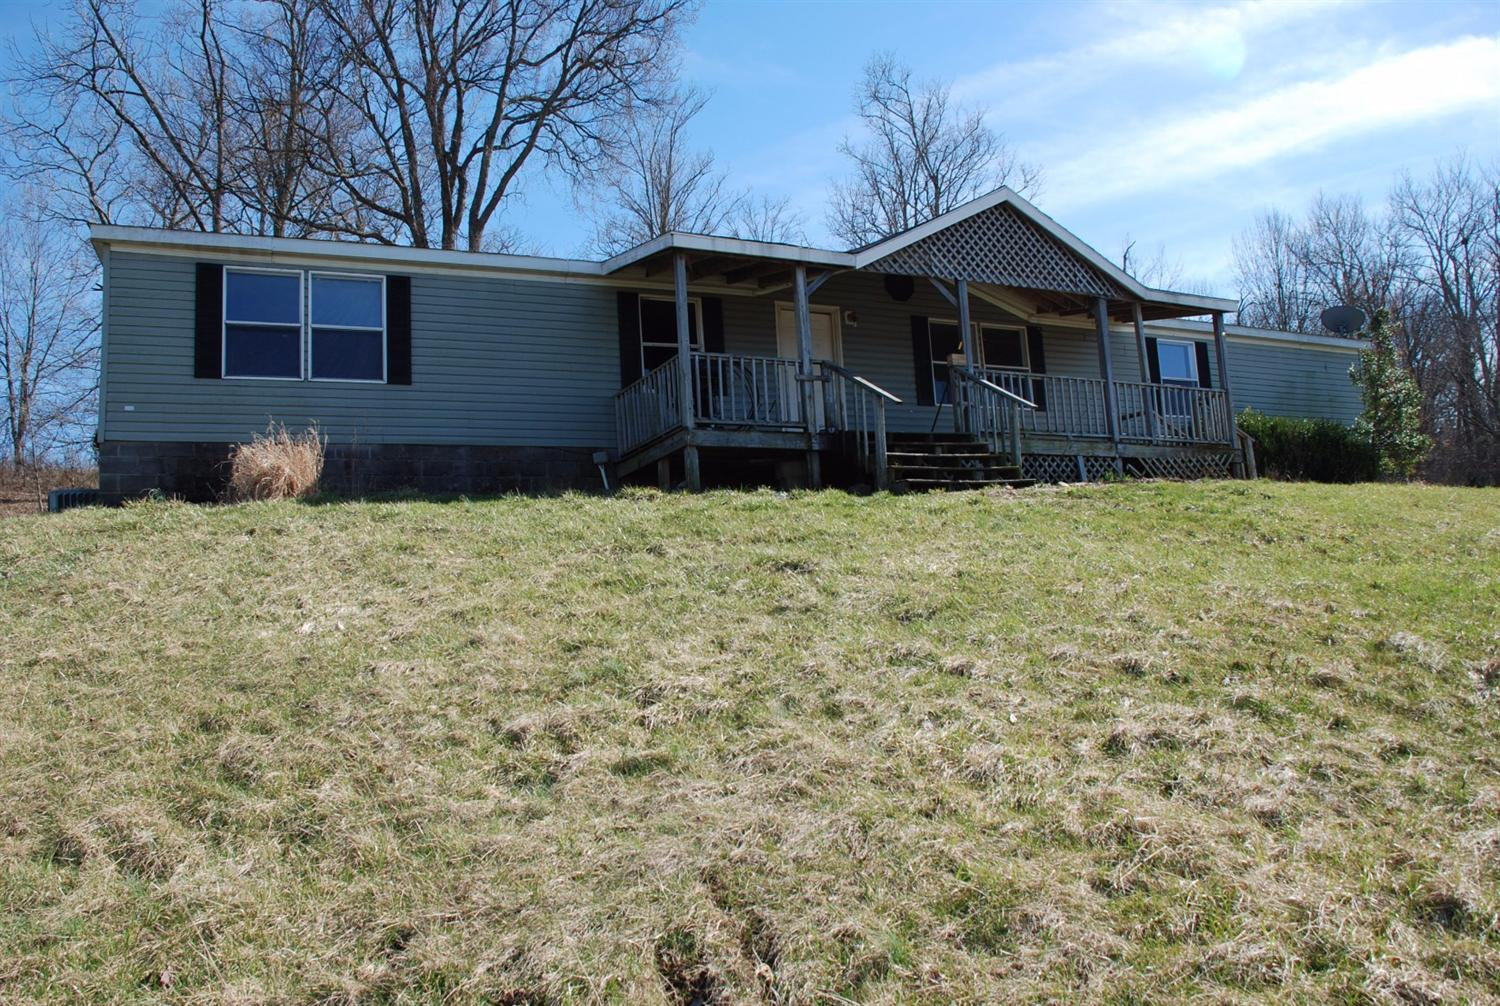 777 Twin Creek Rd, Cynthiana, KY 41031